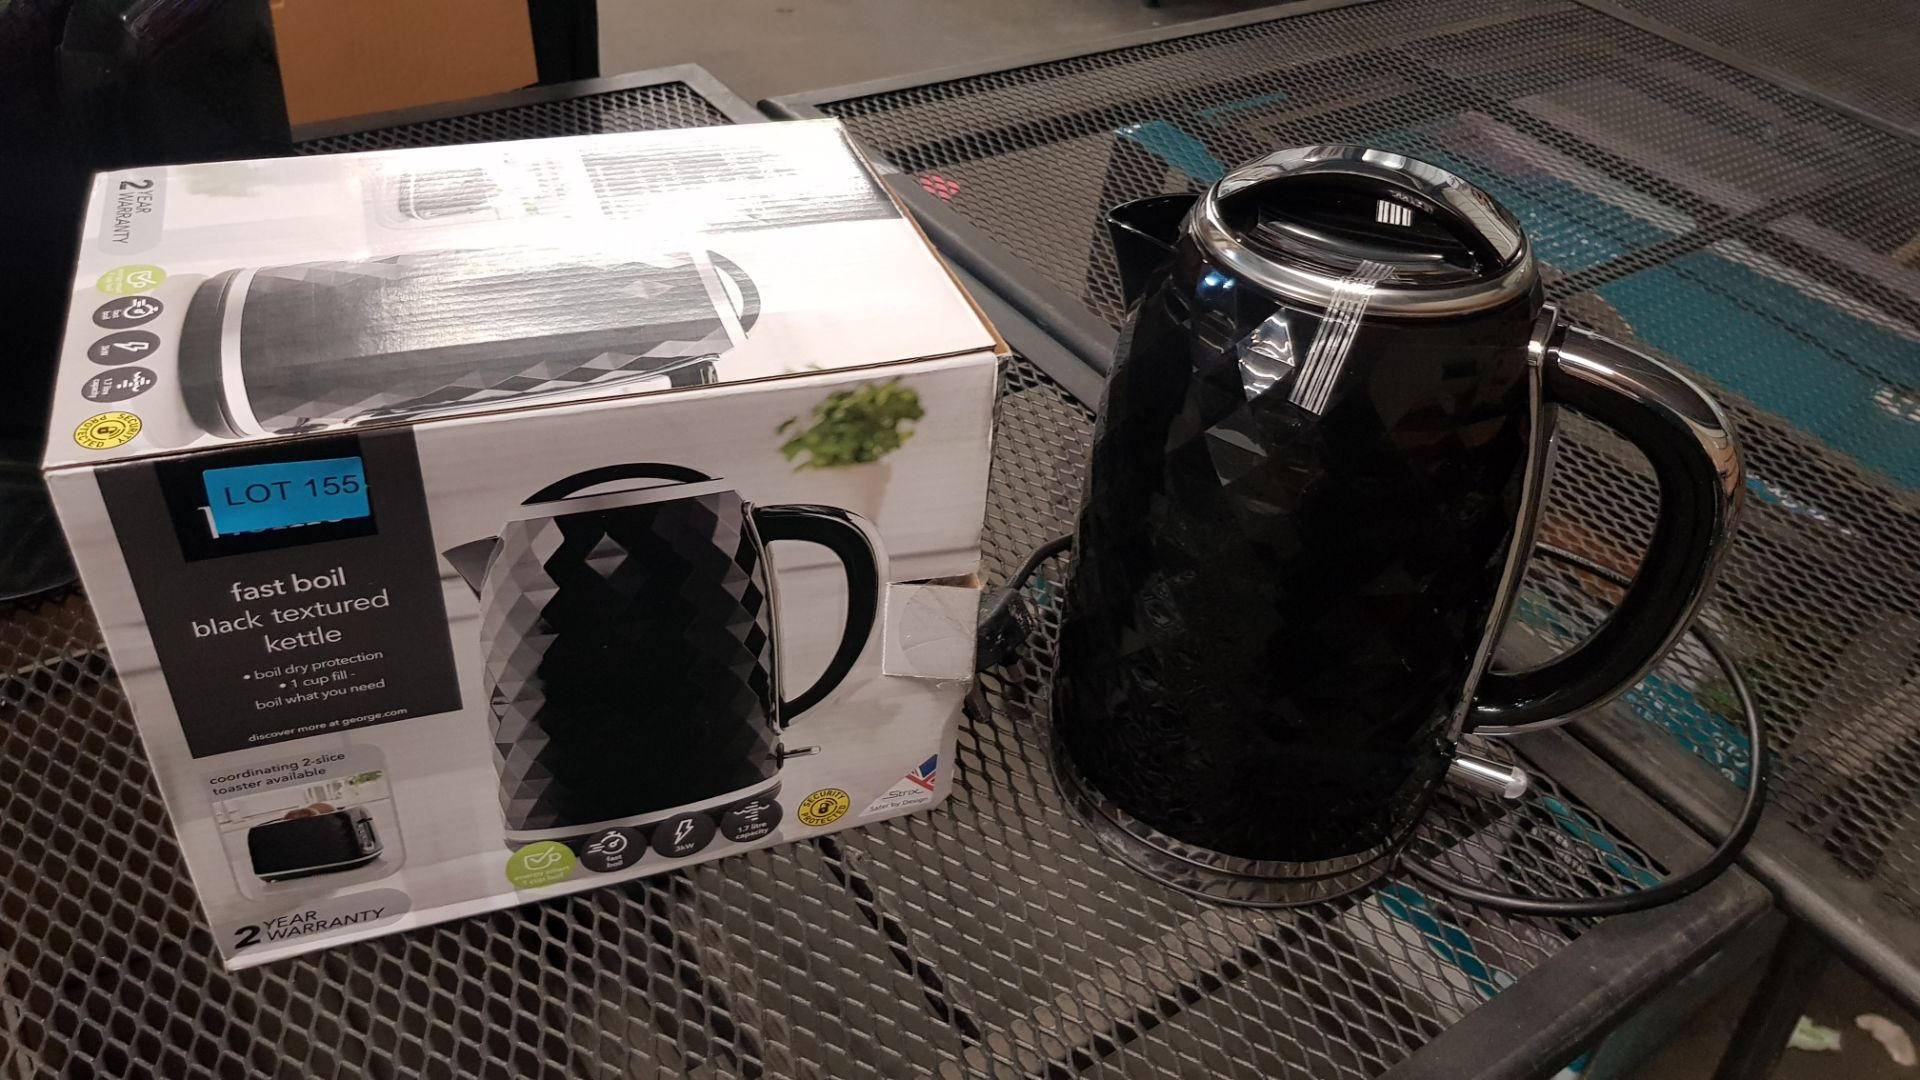 (15) 4x Items, 1x Toshiba Rapid Boiling Electric Kettle Cream. 1x Toshiba Rapid Boiling Electric Ke - Image 9 of 12